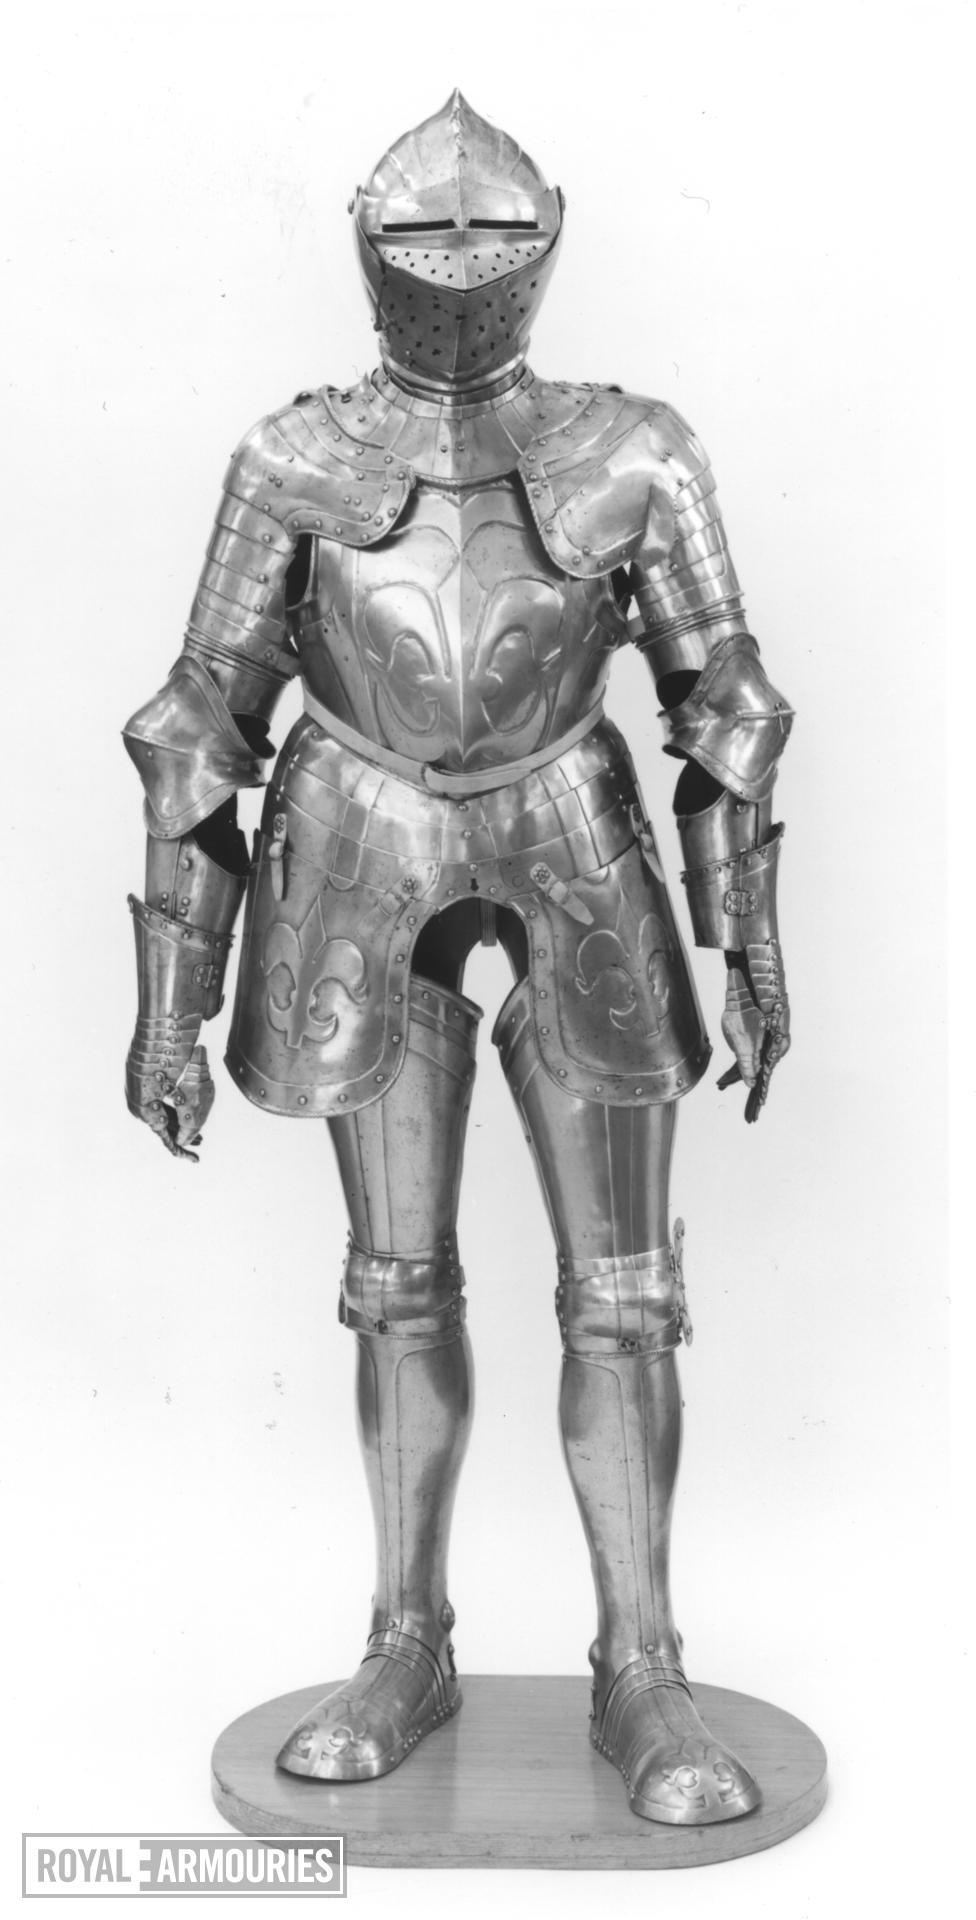 Field armour composite, embossed with fleur-de-lys, with modern additions